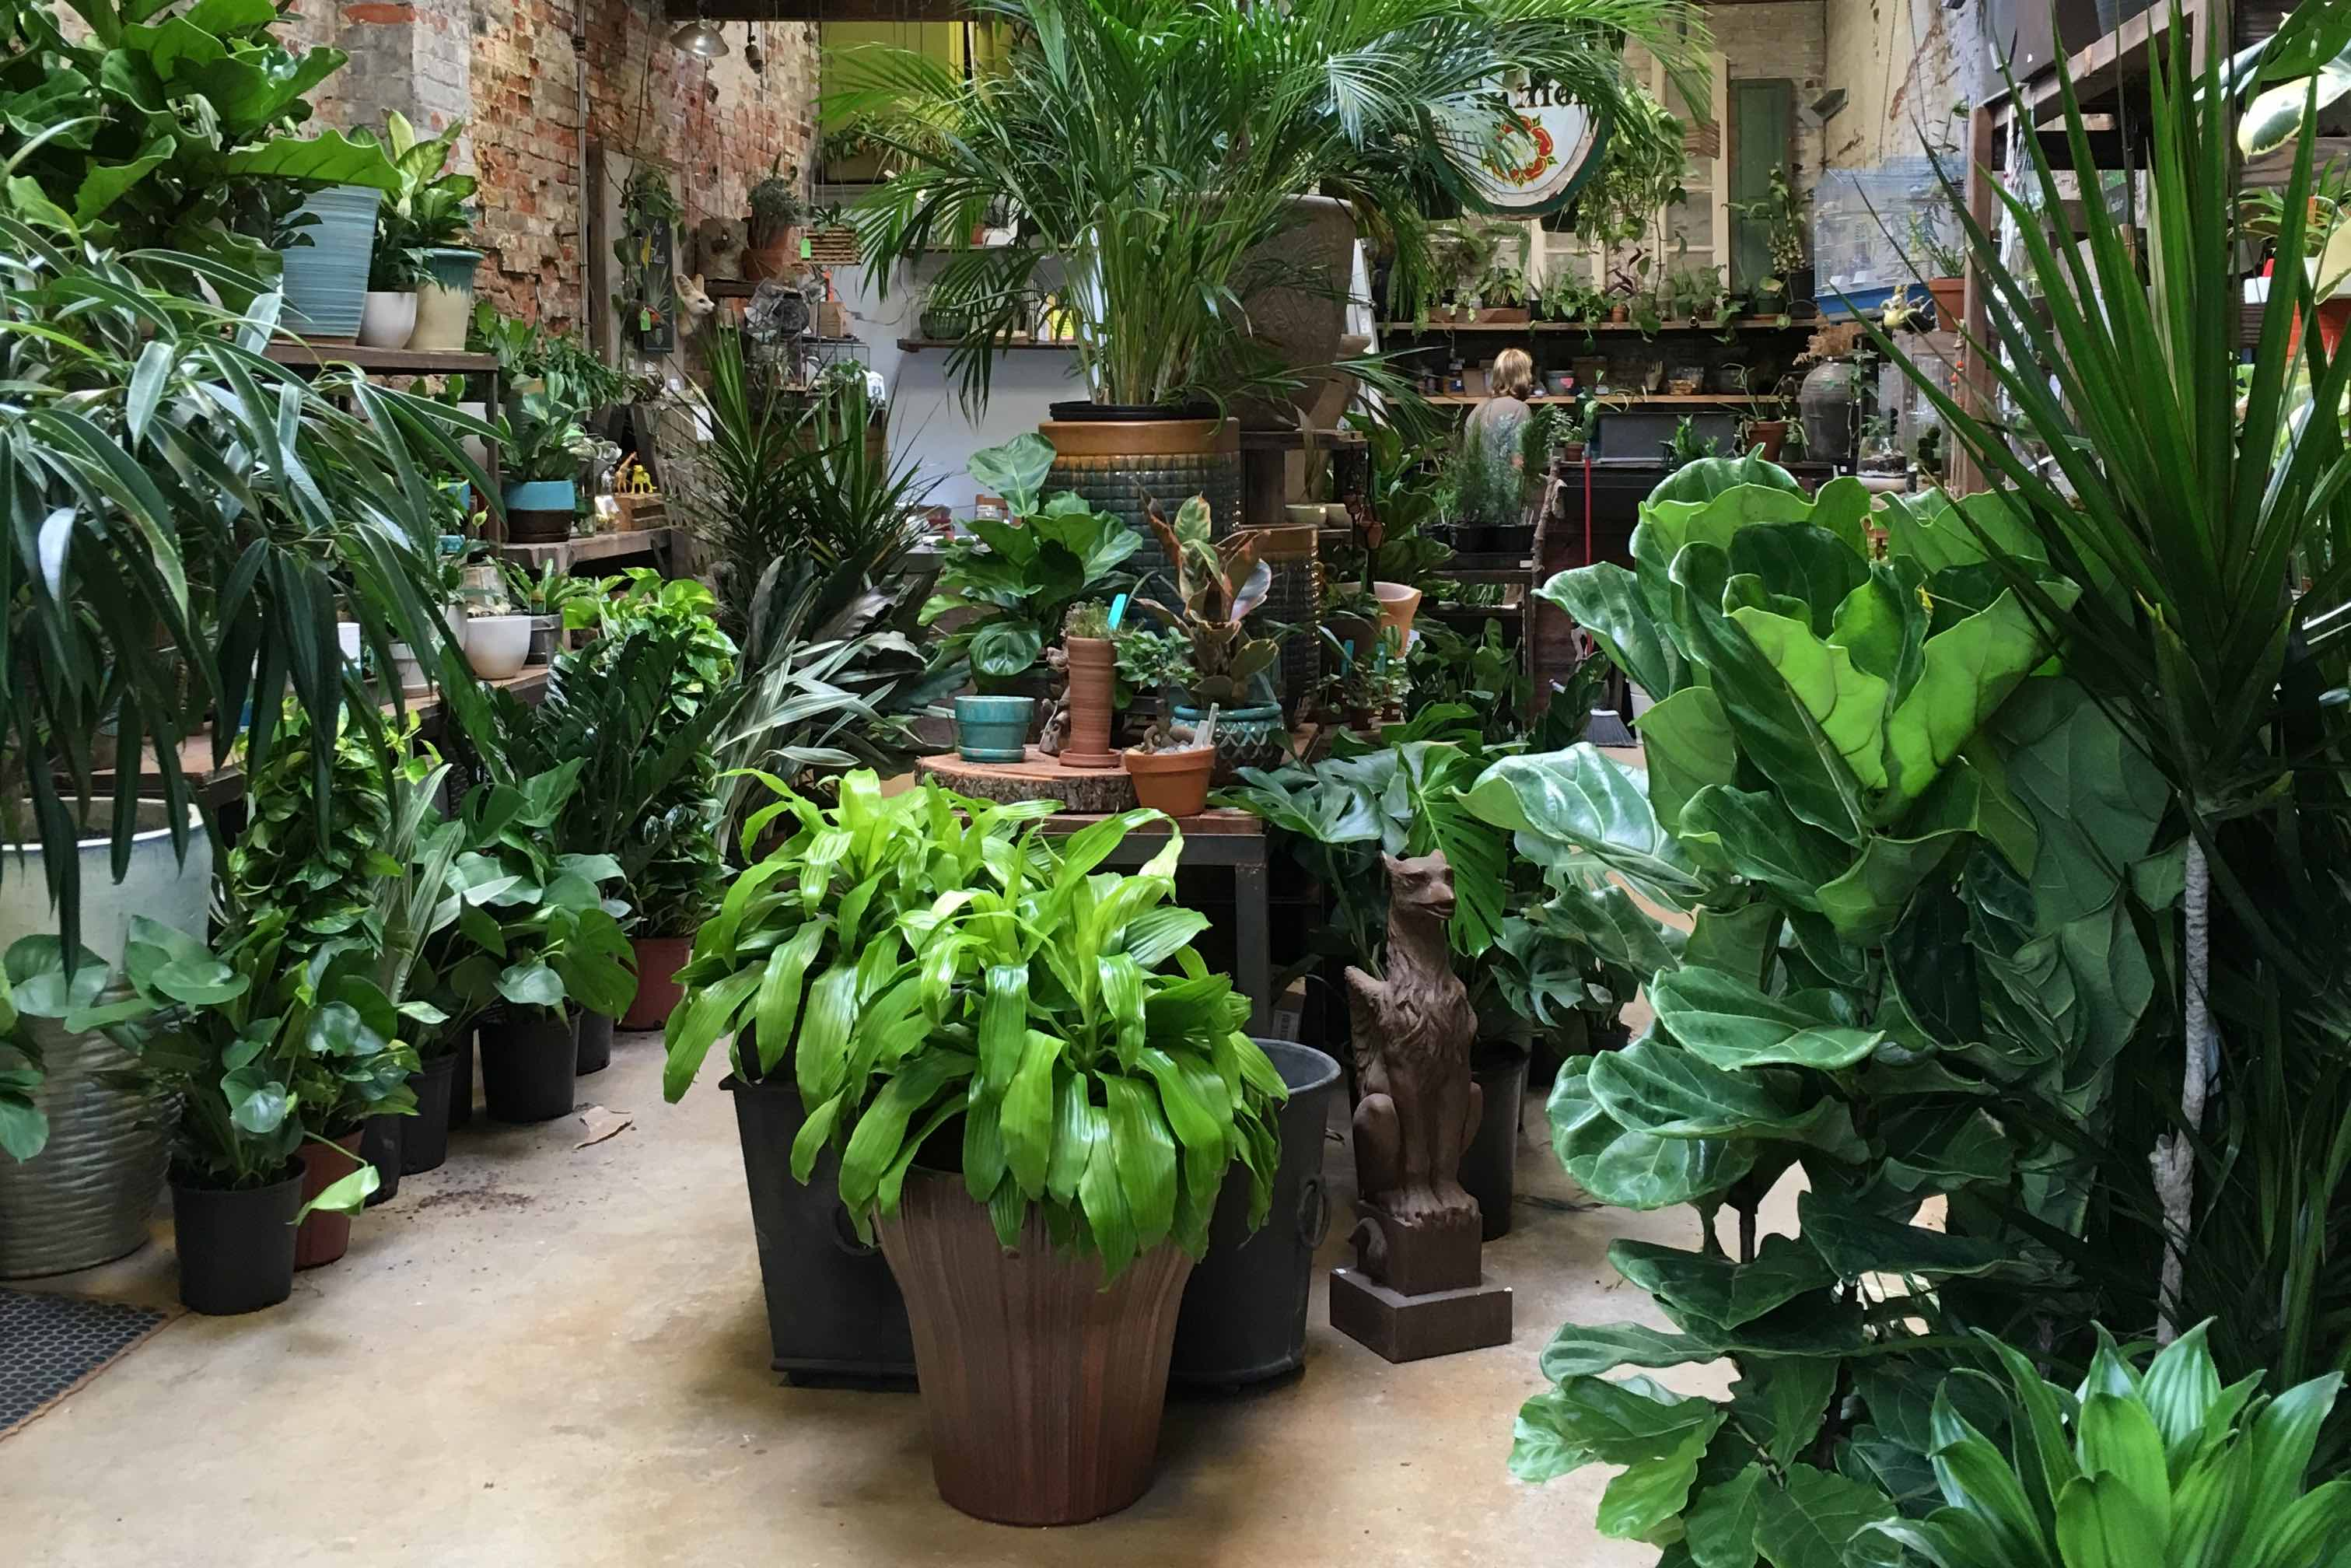 How to Make Your House Plants Survive in Your Philly Rowhouse